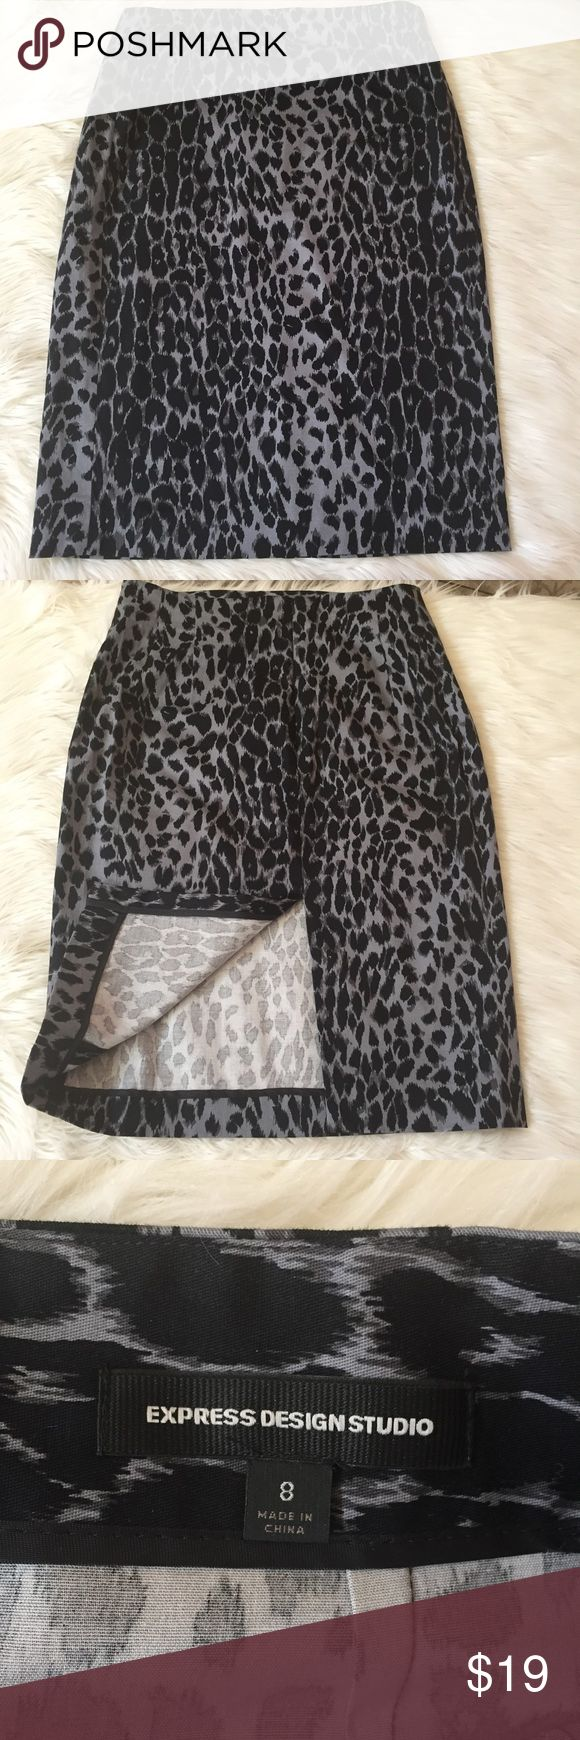 Express leopard pencil skirt NWOT Gray and black leopard pencil skirt.  Has a zipper and slit in the back.  Measures 24 inches in length.  New with out tags . Express Skirts Pencil